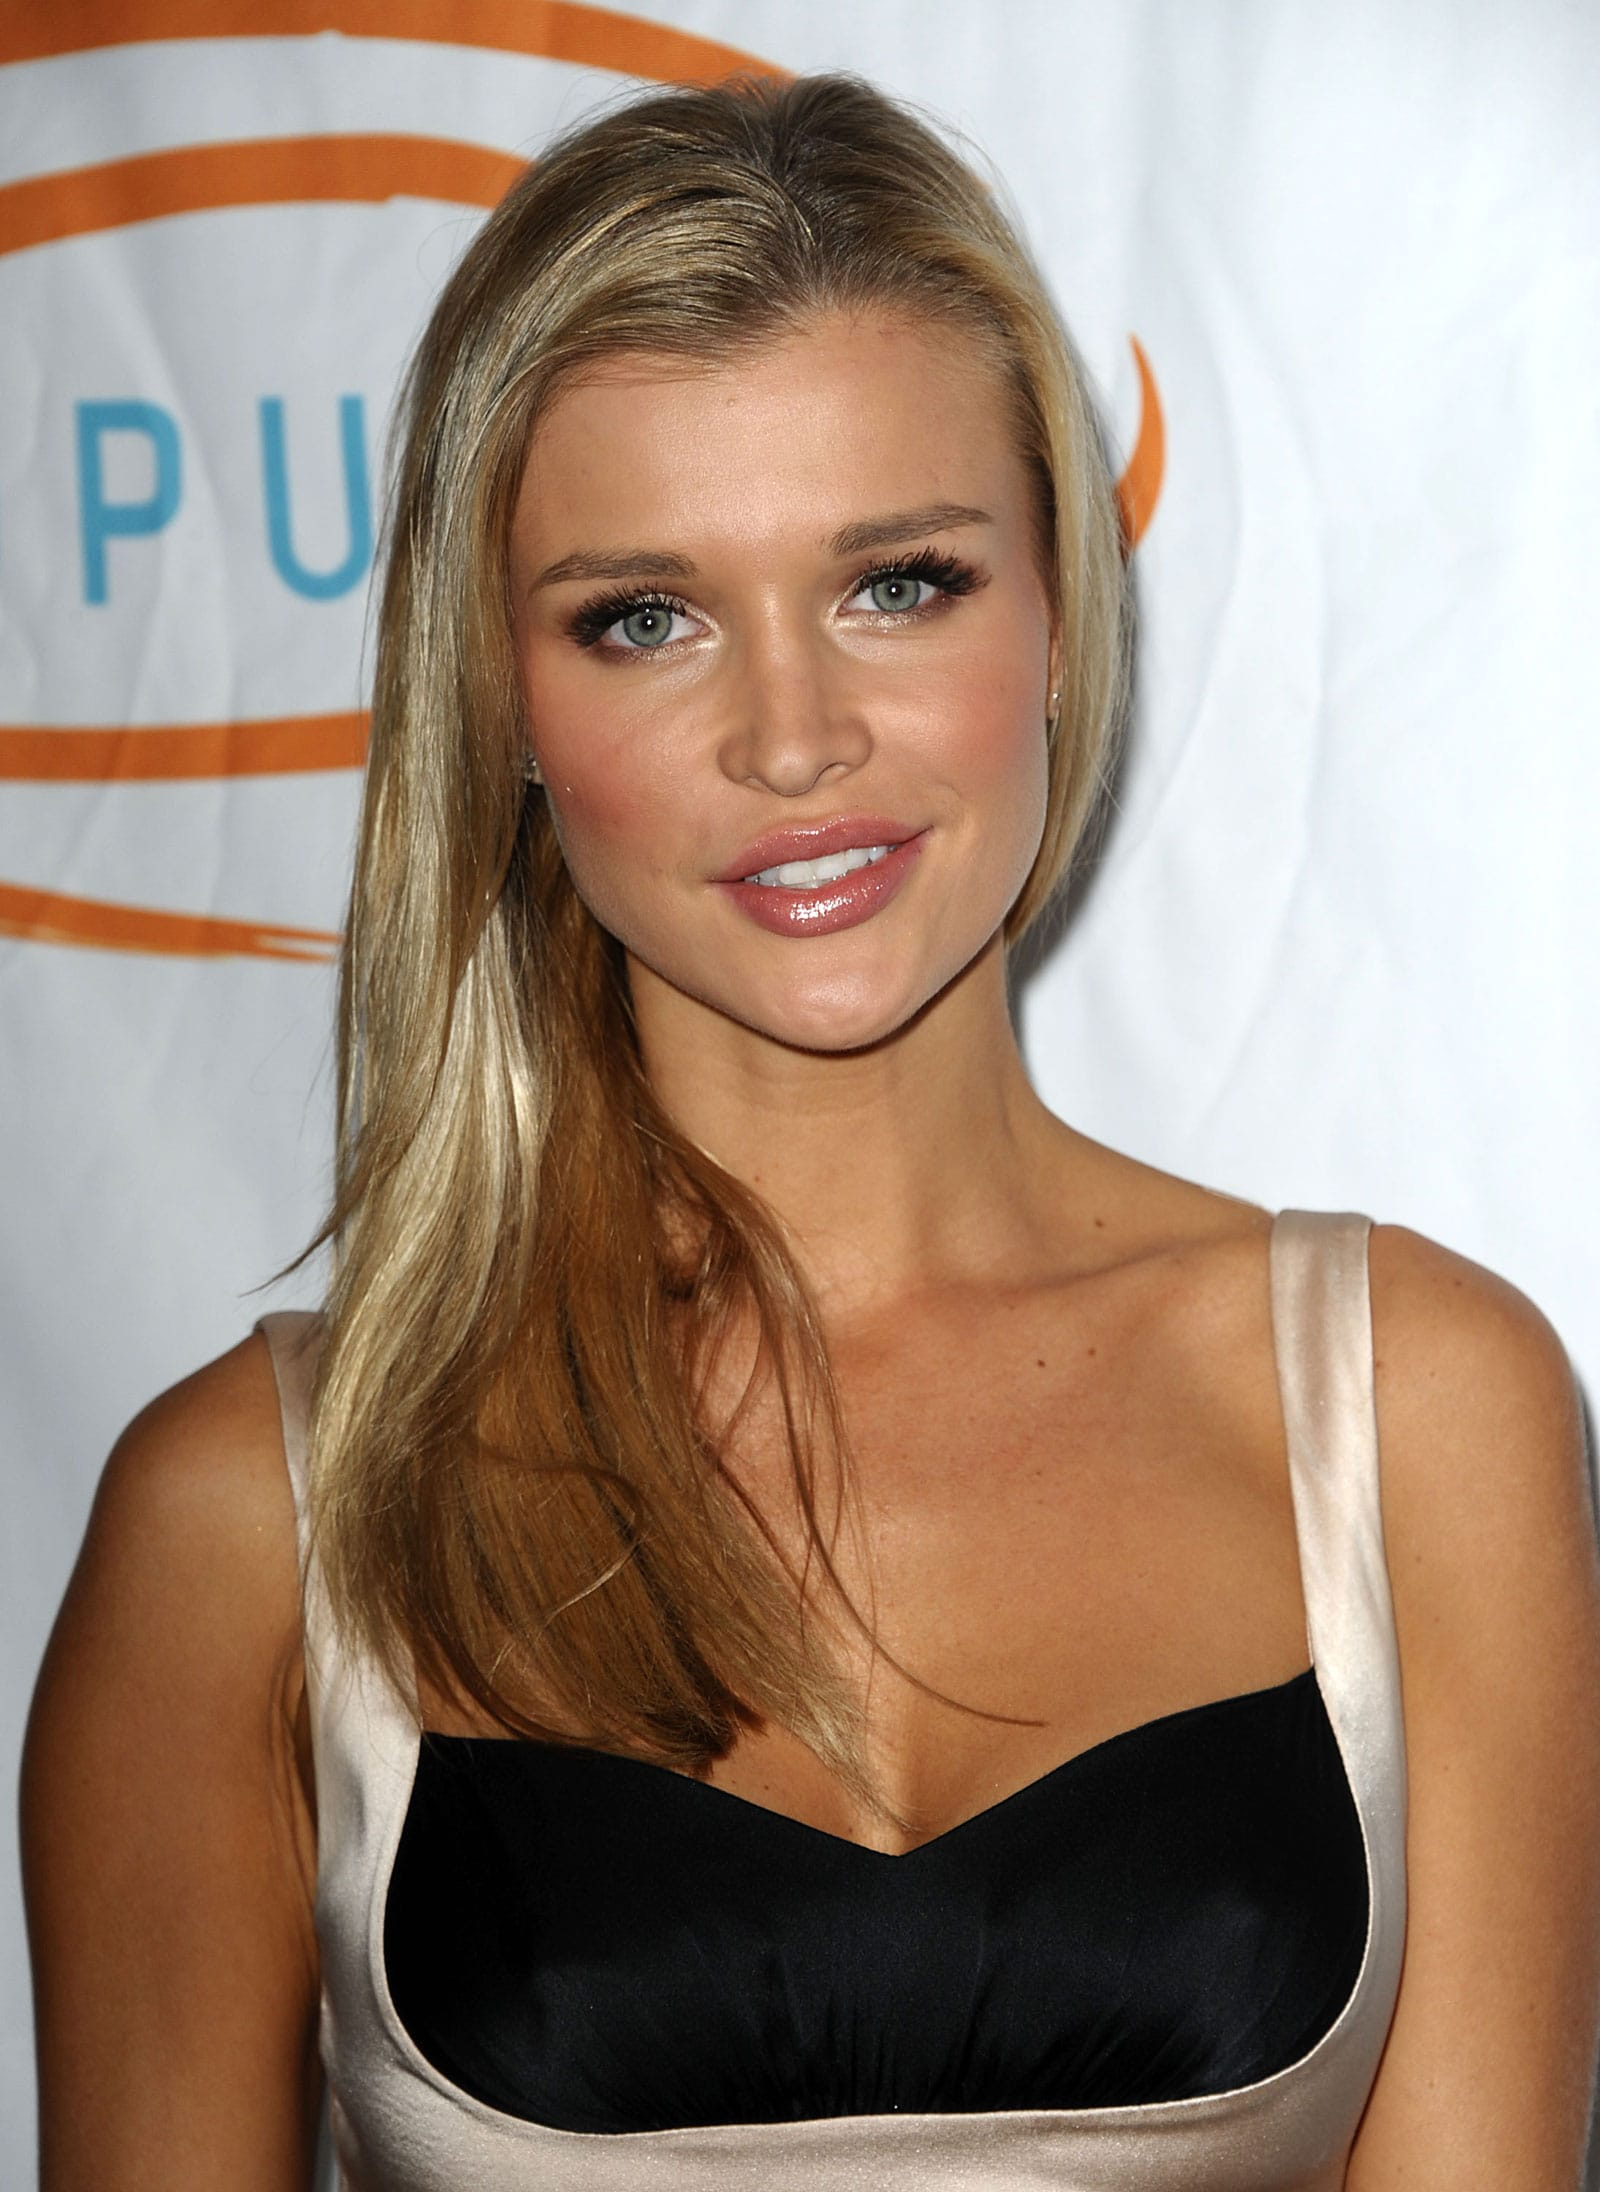 Joanna Krupa For mobile